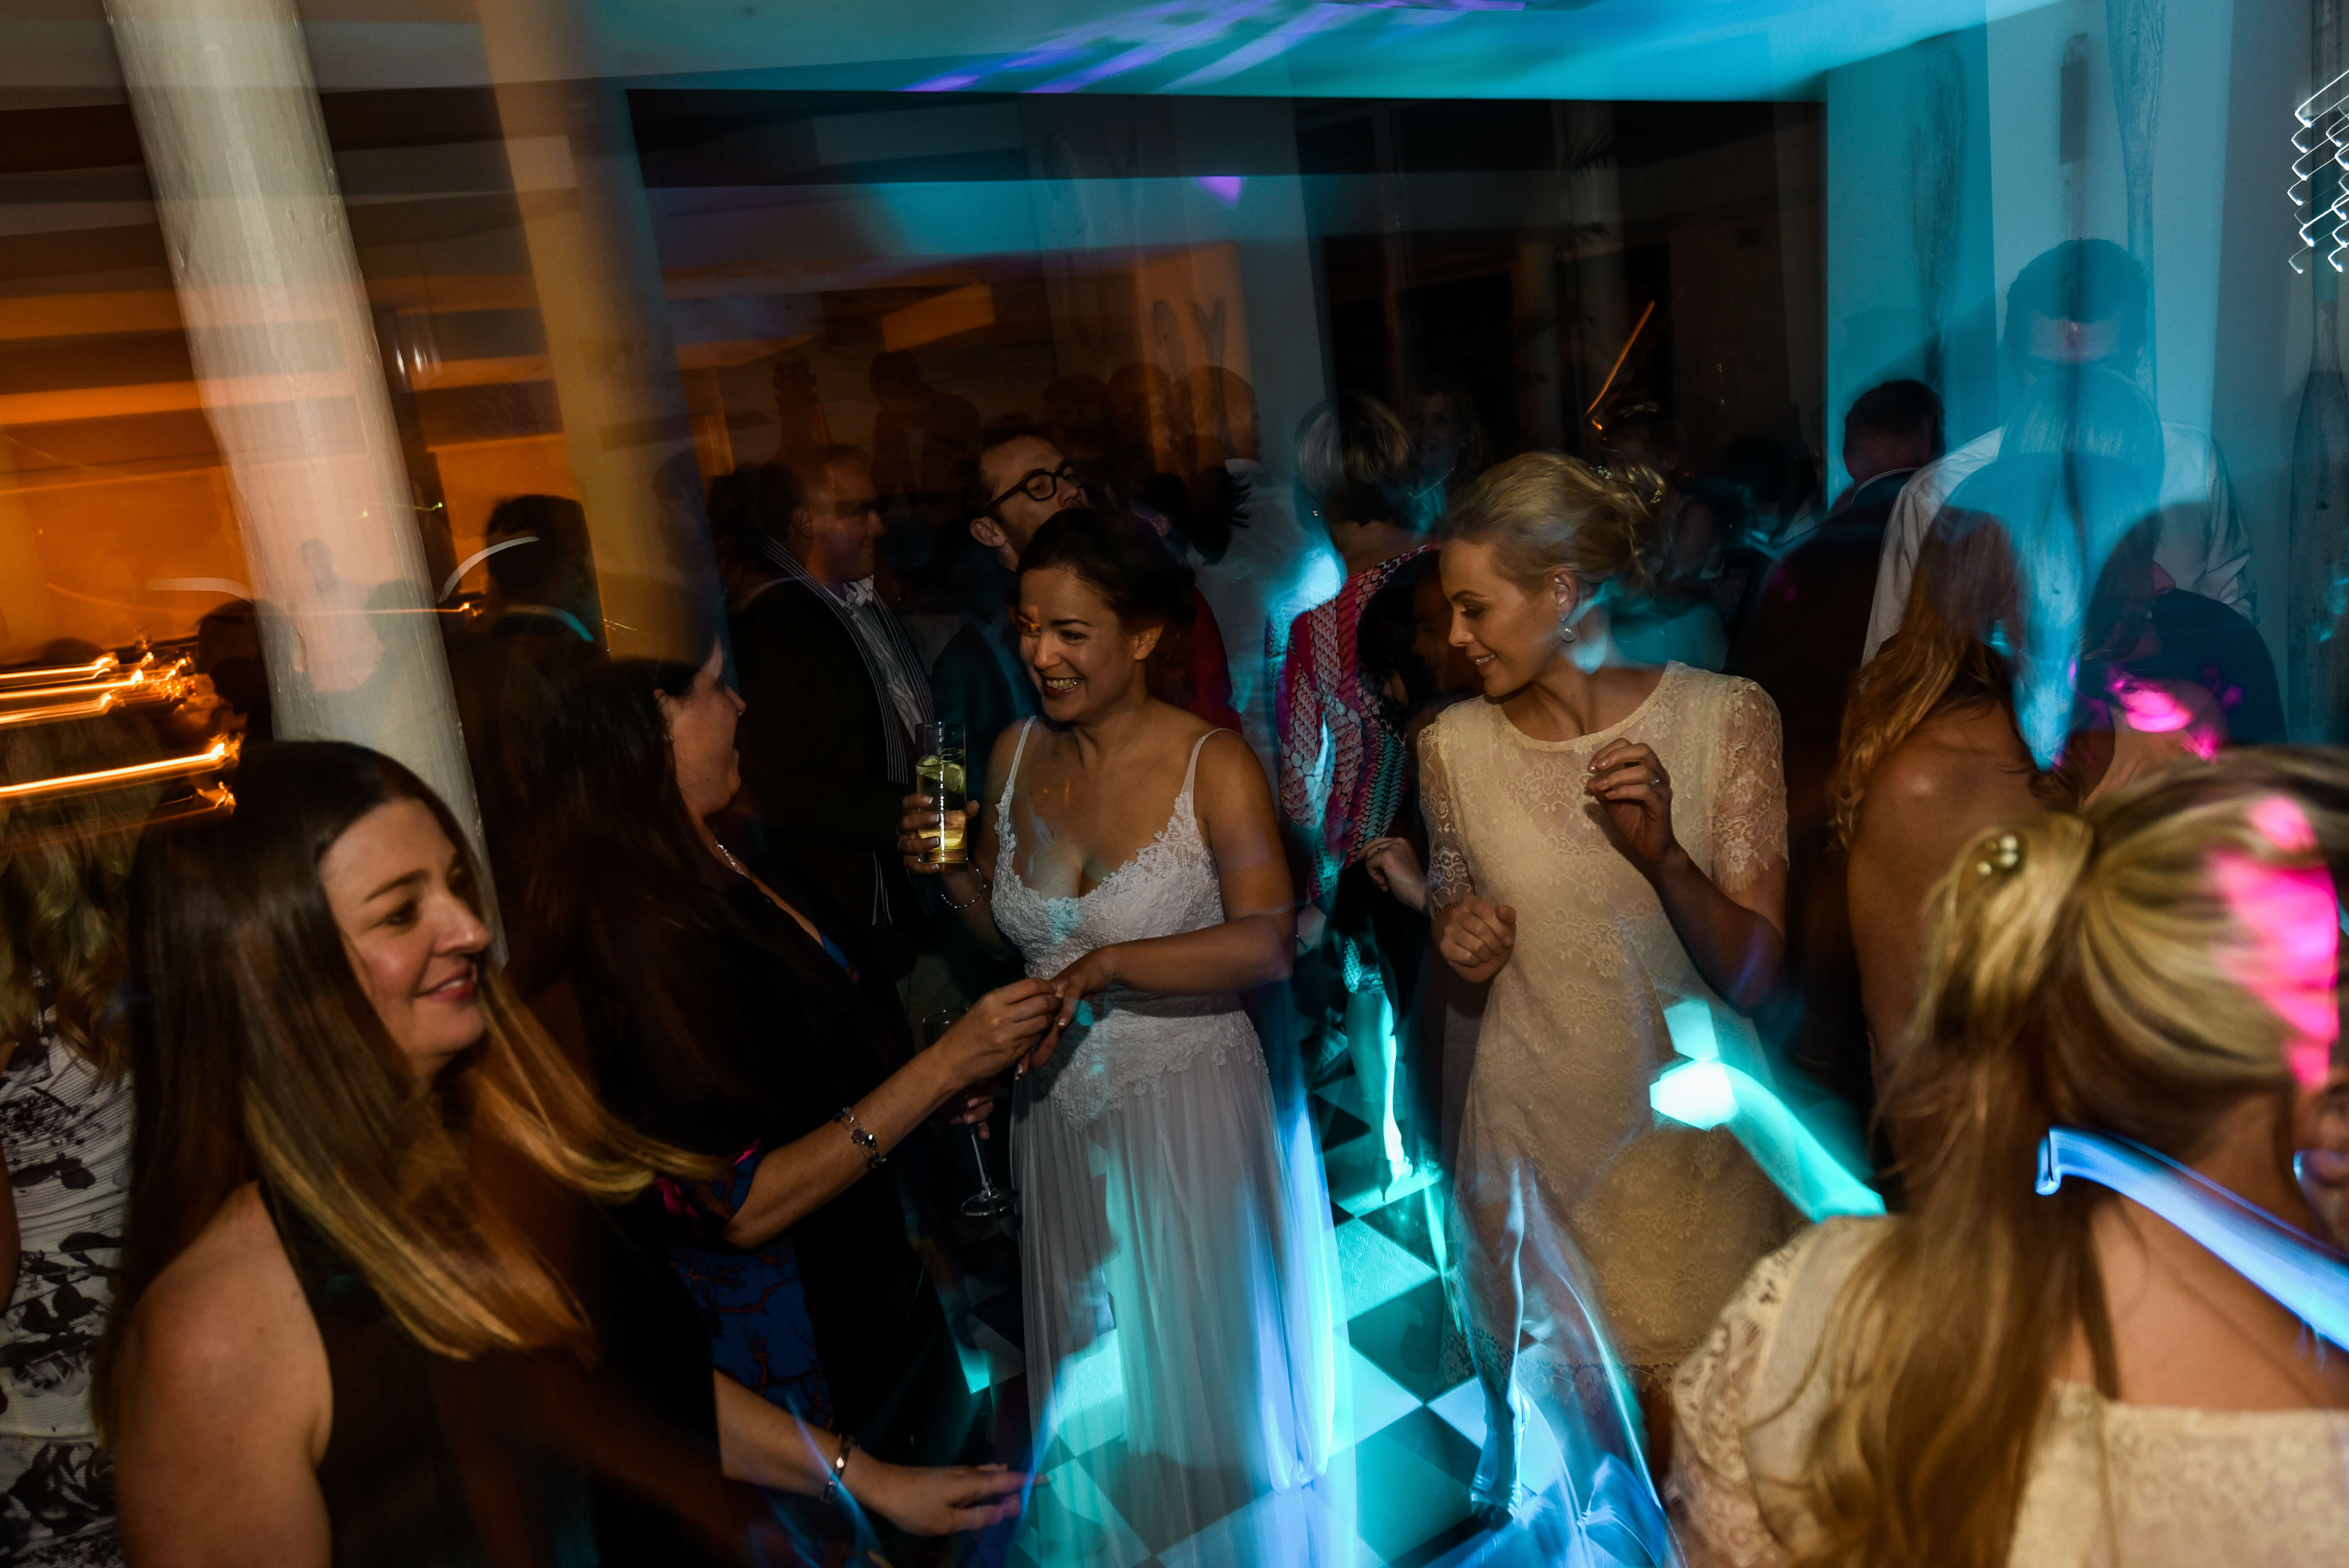 Many women dancing at their friend's wedding to an amazing DJ.